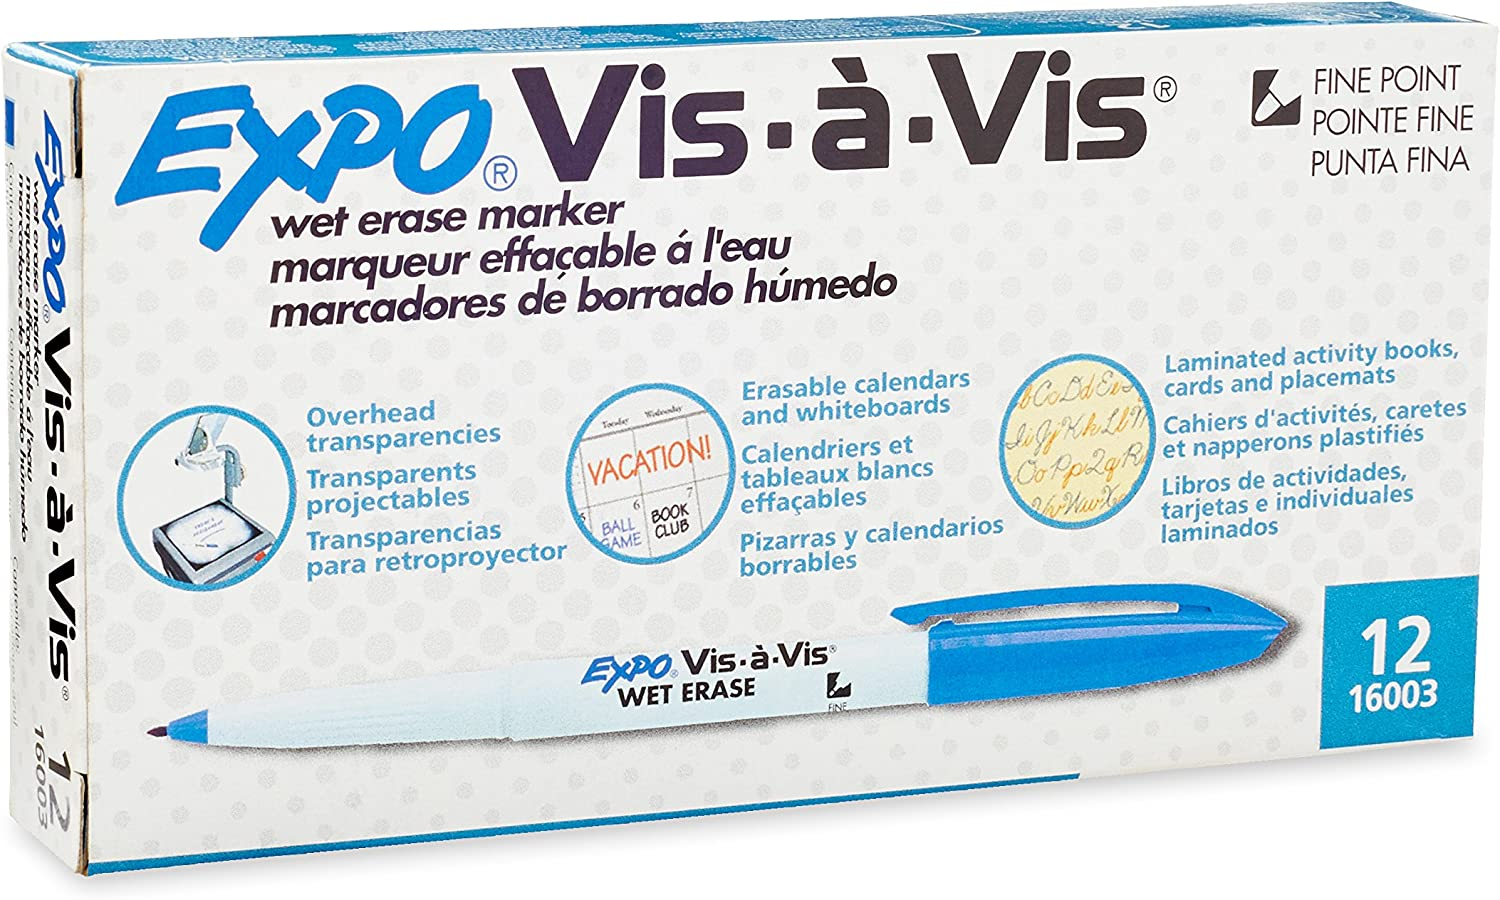 Blue In Fine Marker Point Type Inc Expo Vis160;-vis Wet Erase Overhead Transparency Marker Newell Rubbermaid